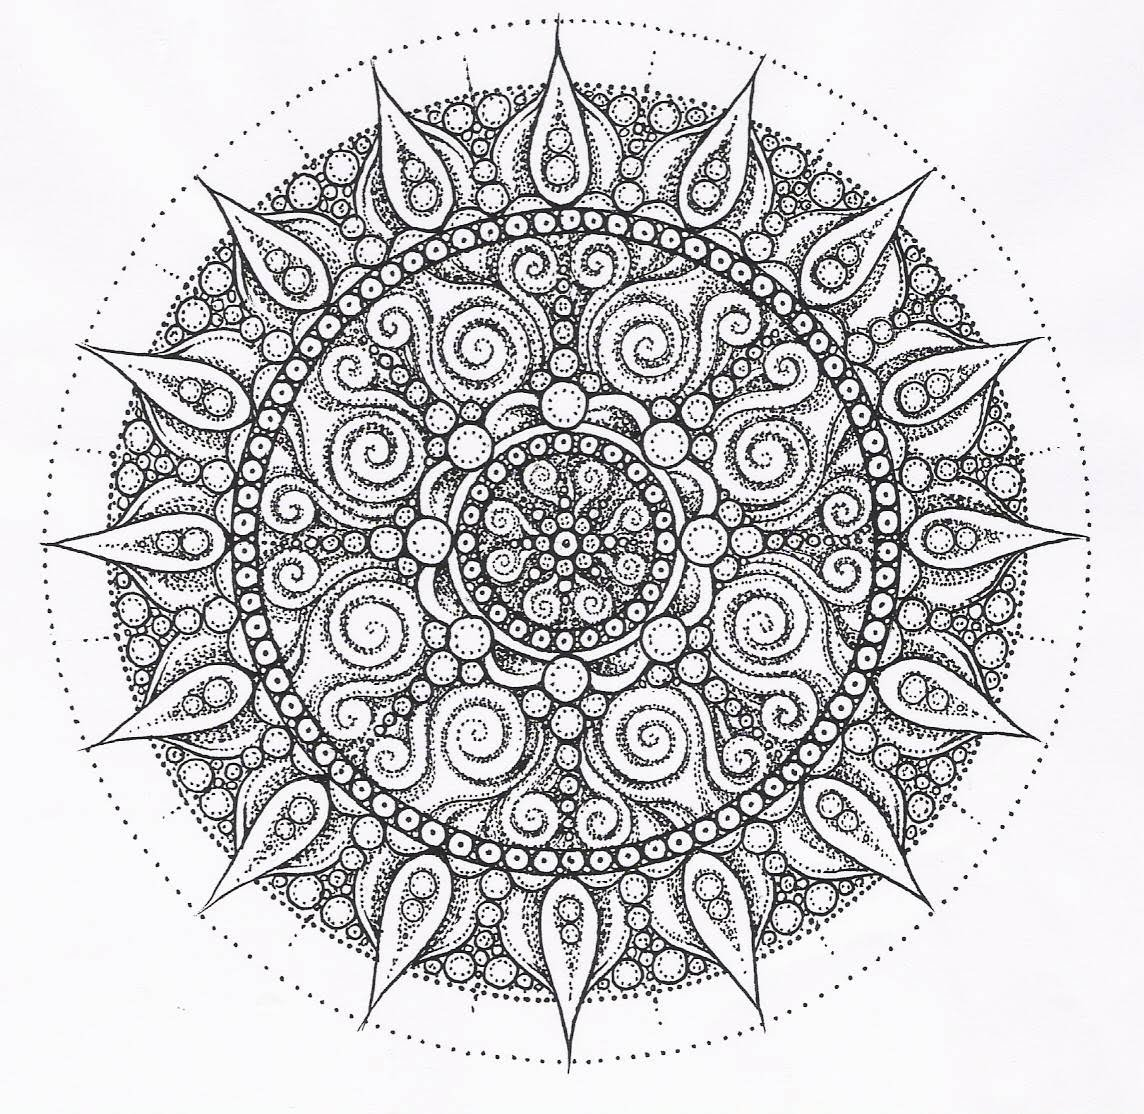 mandala coloring pages free printable - Free Printable Mandala Coloring Pages